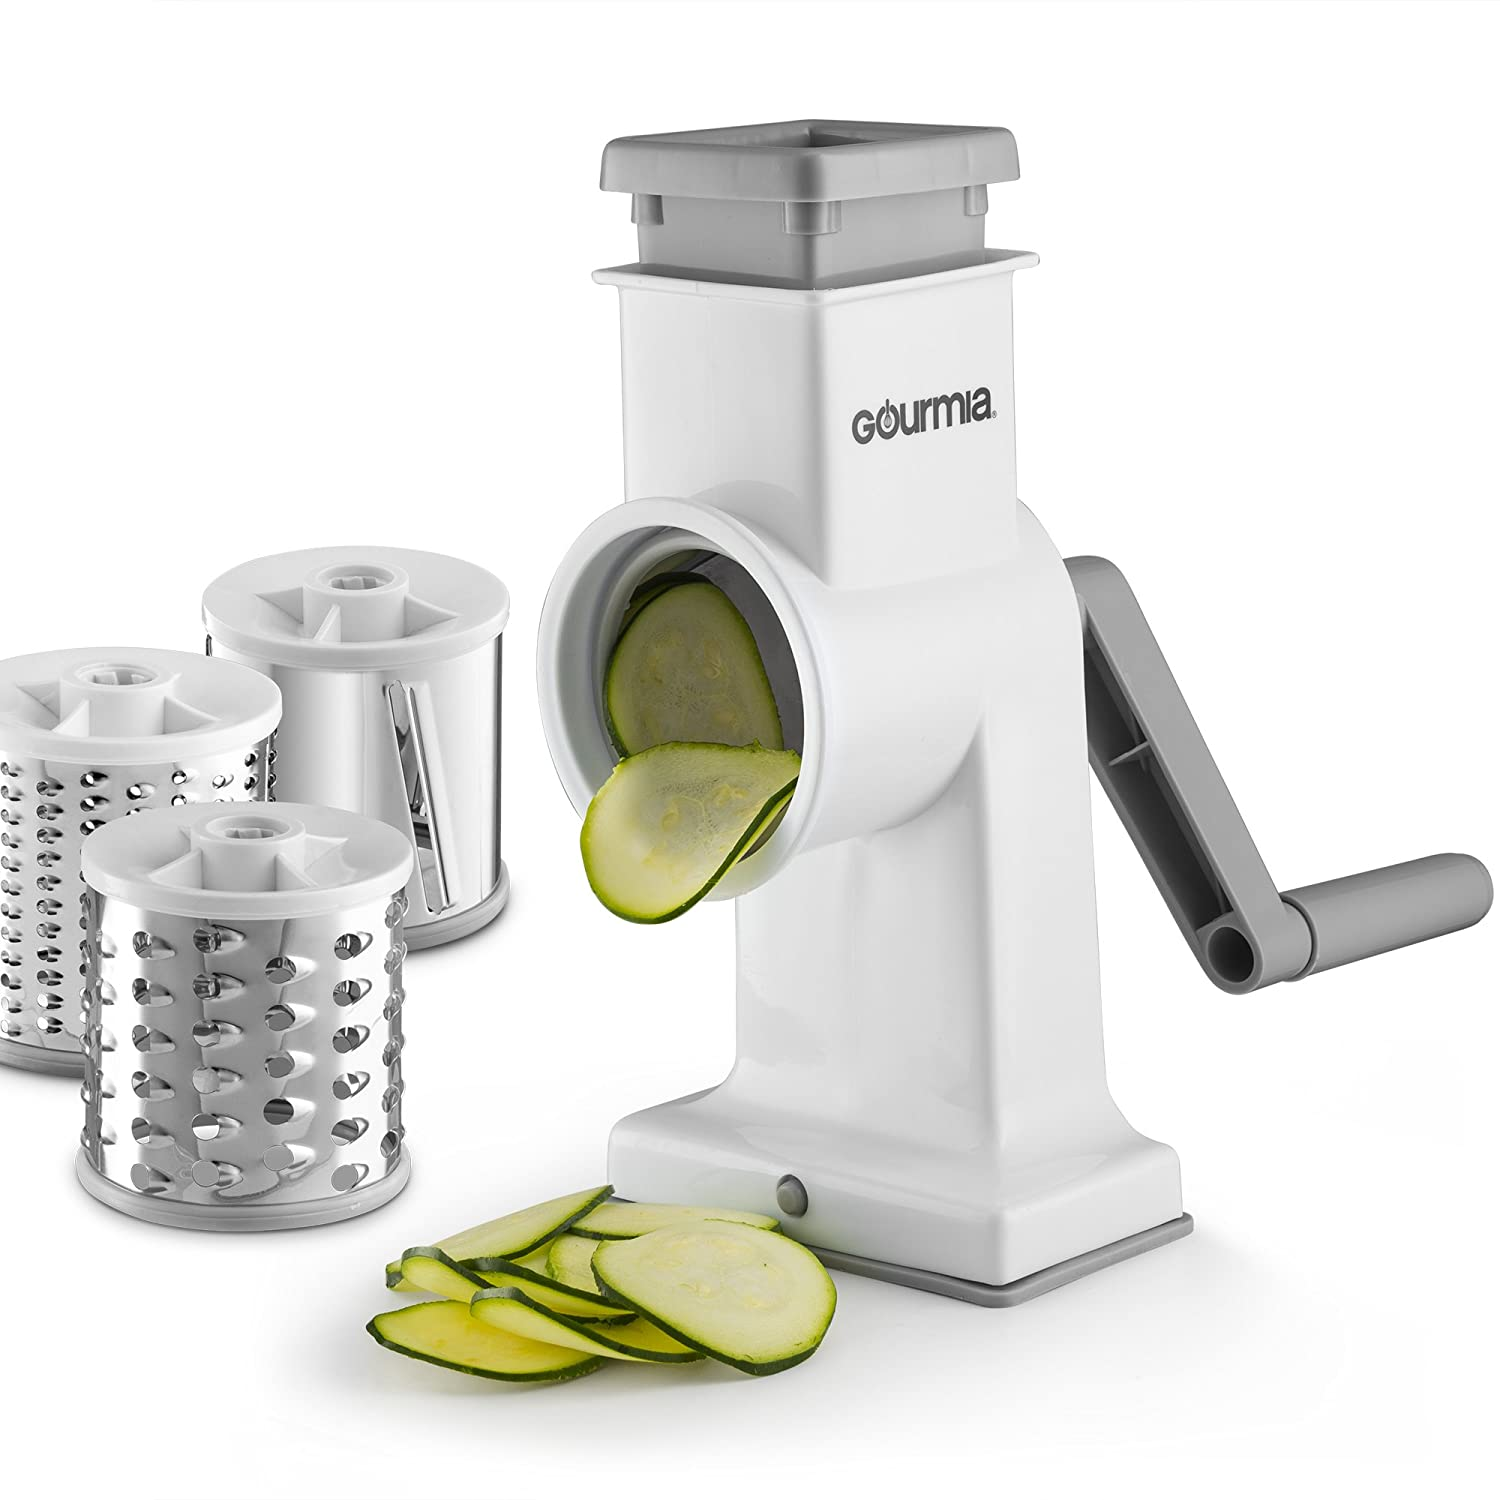 Gourmia GSS9620 Rotary Drum Grater – 3 Interchangeable Stainless Steel Grating Blades - Hand Crank - Wide Mouth Fits Large Vegetables and More – Non Skid Suction Base - BPA Free, Dishwasher Safe